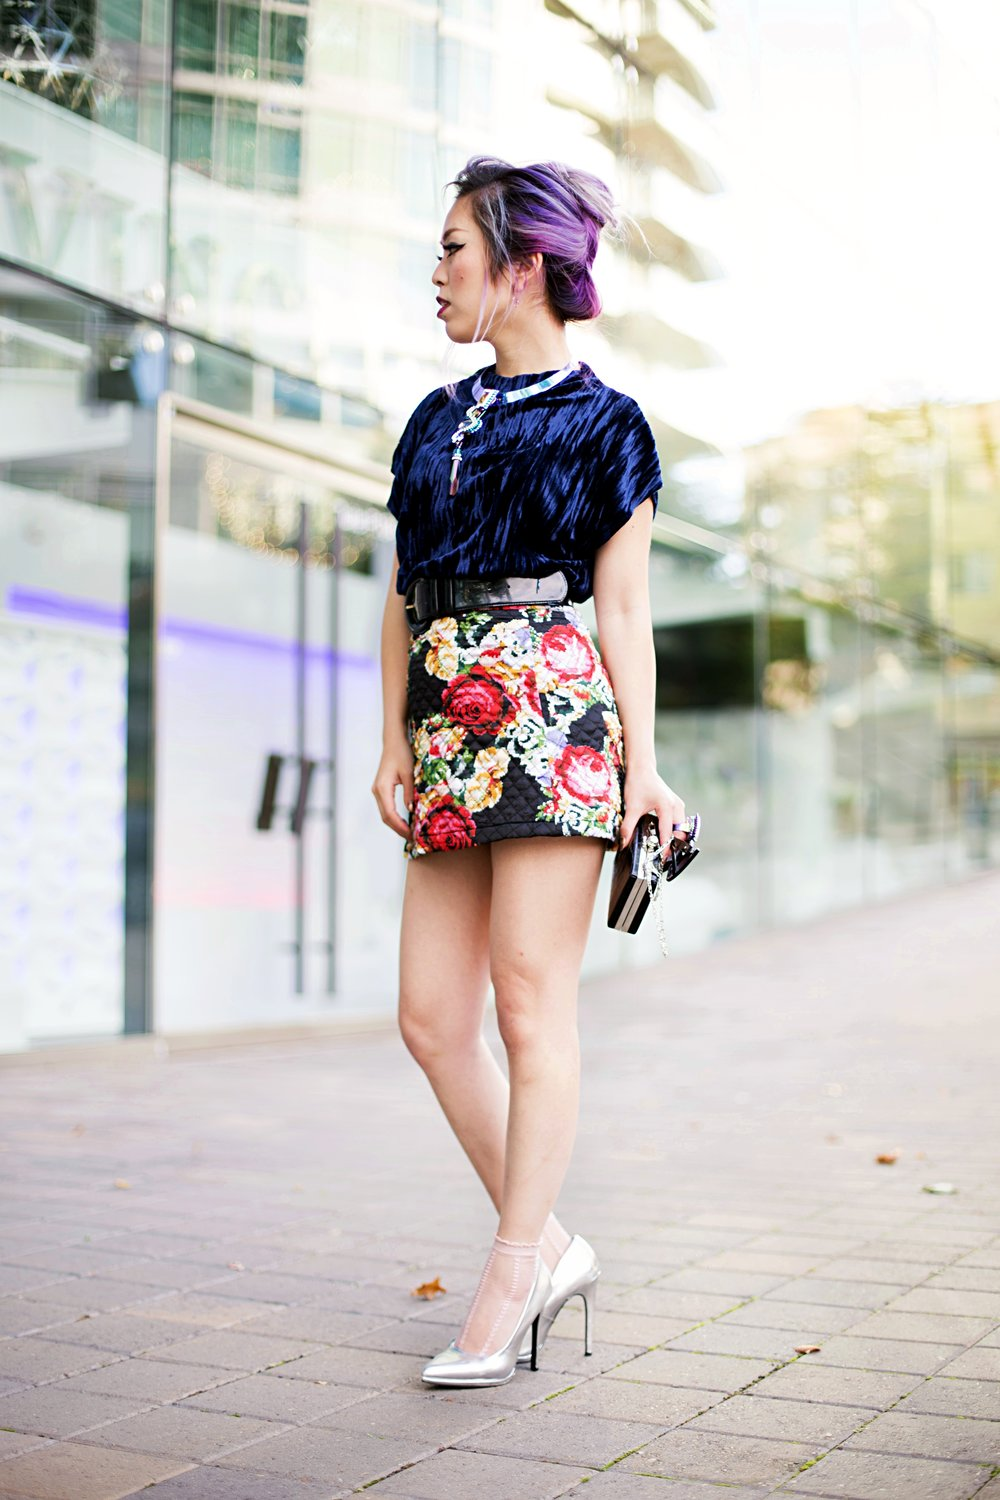 ZARA Blue Velvet Top_Forever 21 Floral Print Mini Skirt_Mango Patent Belt_Kate Spade Sheer Ankle Socks_Qupid Silver Pumps_Aldo Cateye Sunglasses_Swarovski Fluorescent Necklace & Fluorescent Ring_Aika's Love Closet_Seattle Fashion Blogger_Japanese_Lavender Hair_Mermaid Hair 2